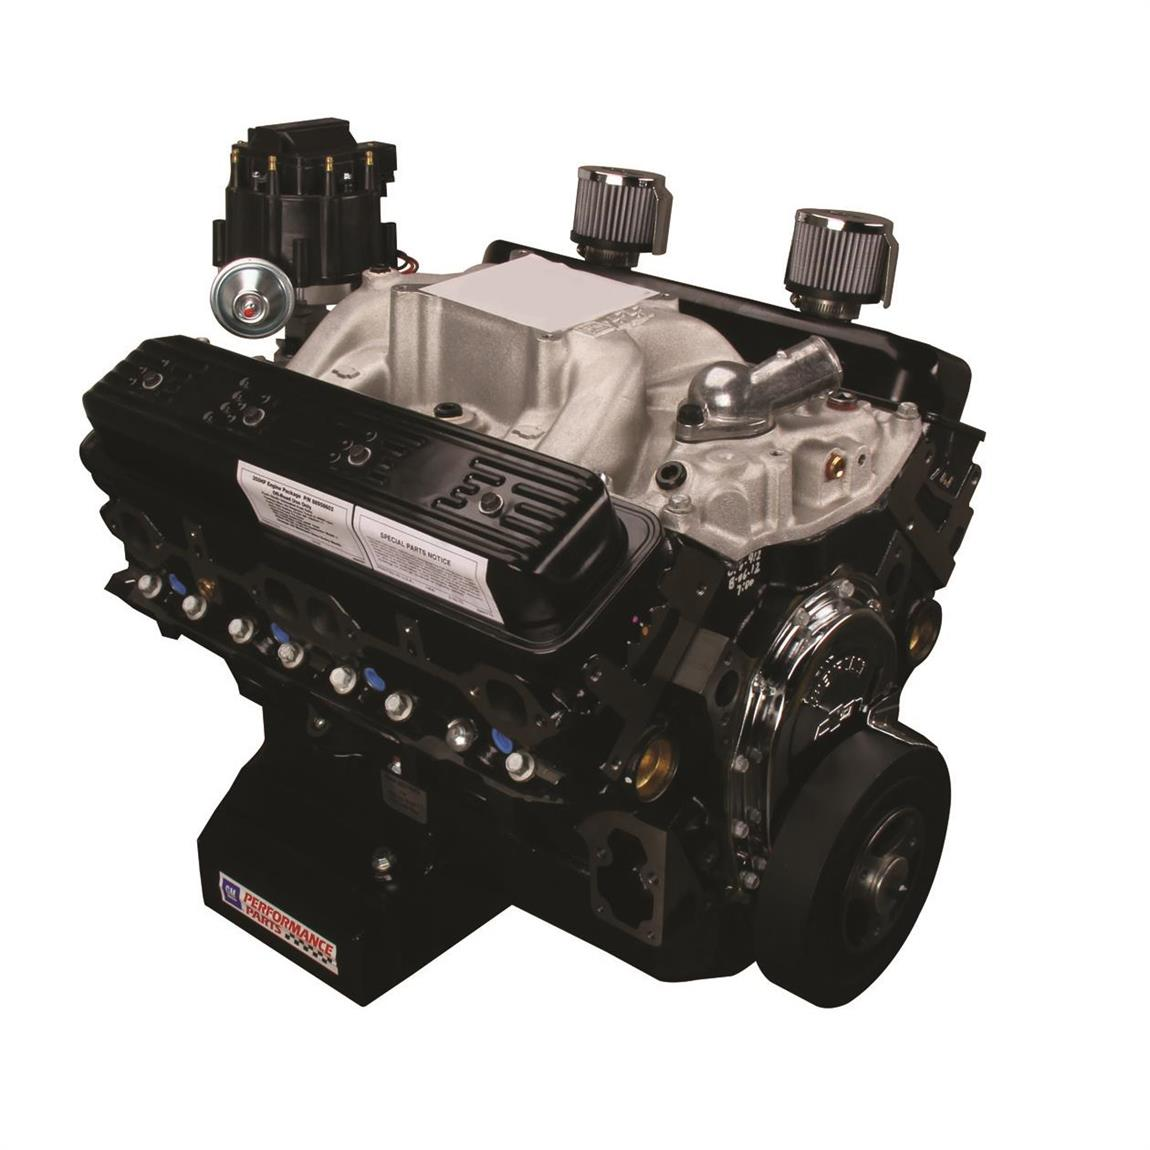 Crate Engines/Motors - Free Shipping @ Speedway Motors